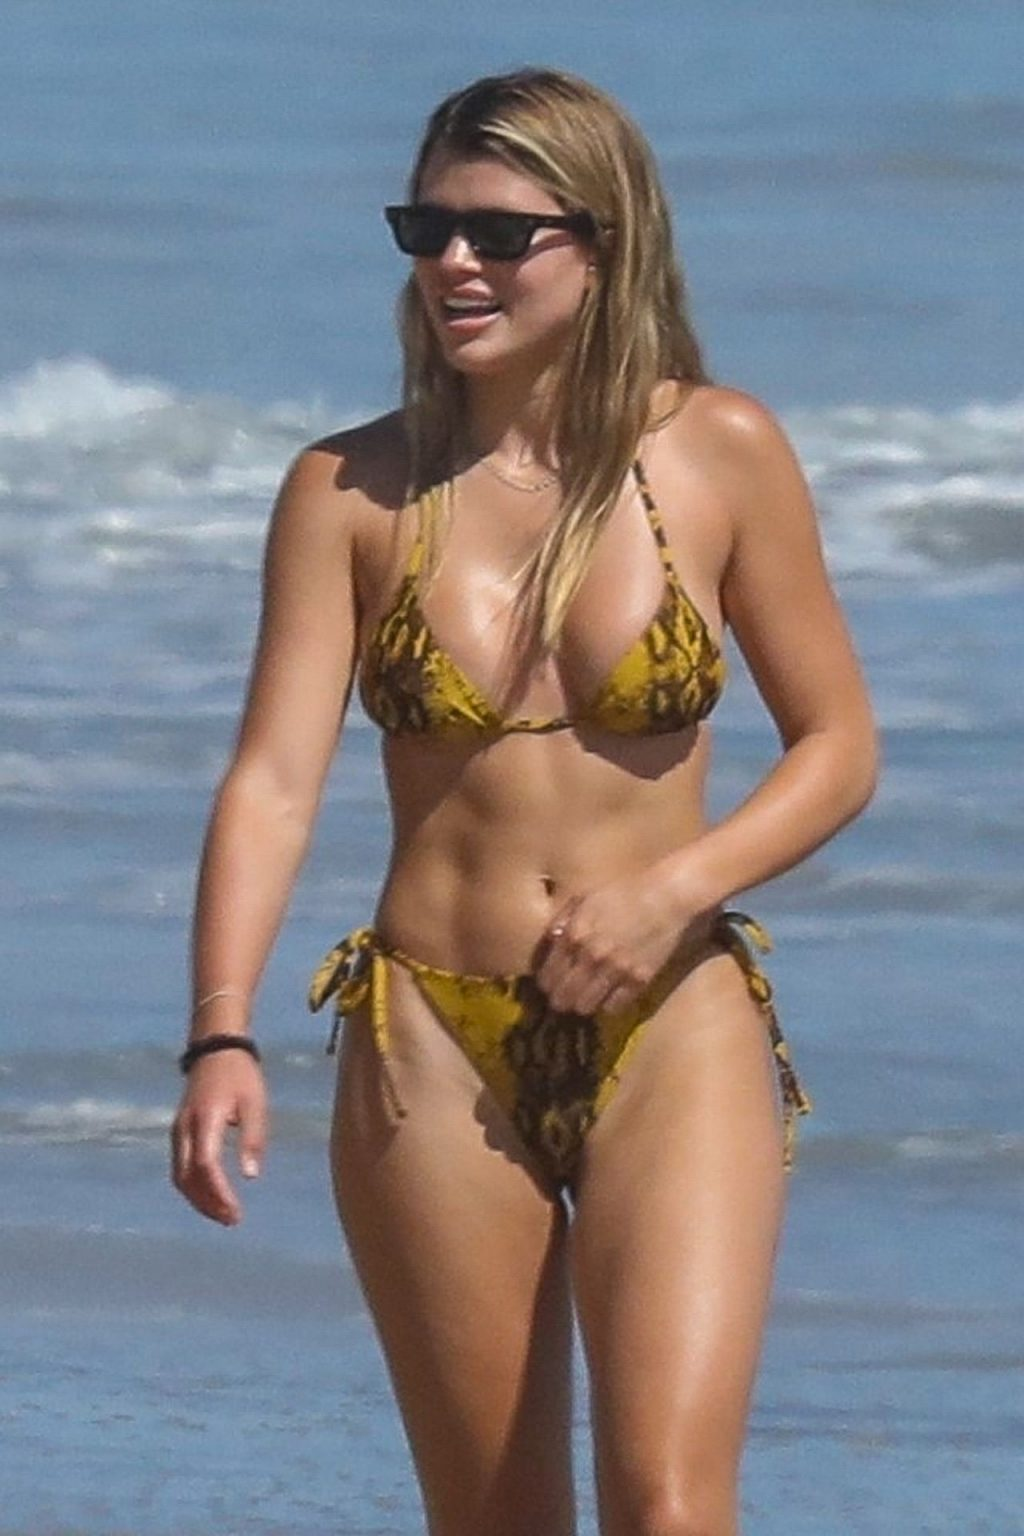 Sofia Richie Shows Off Her Sexy Body in a Bikini on the Beach in Malibu (99 Photos)